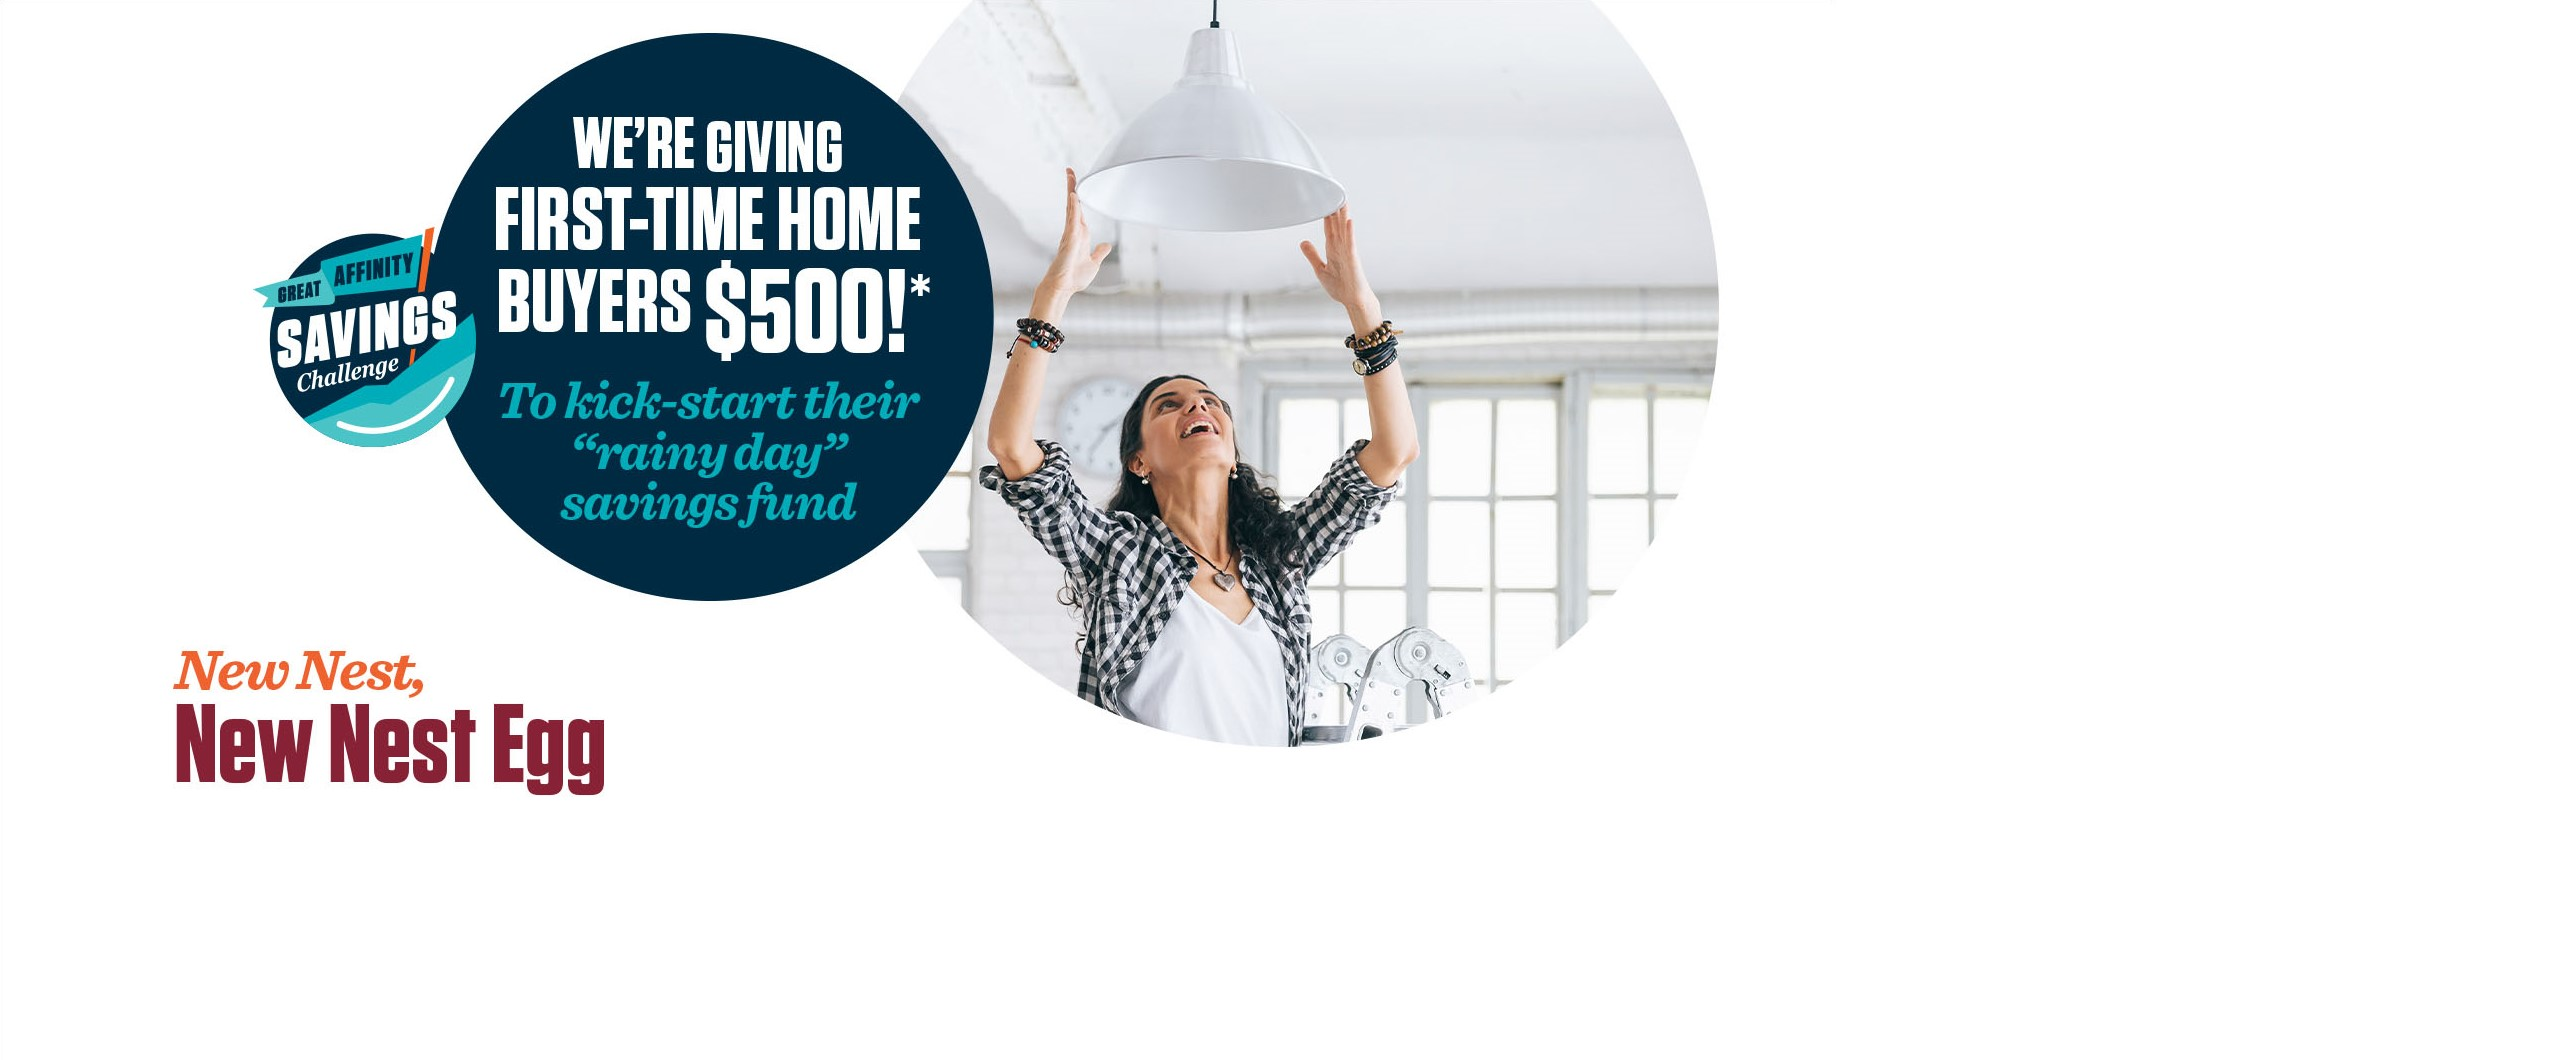 Home Buying Rebate